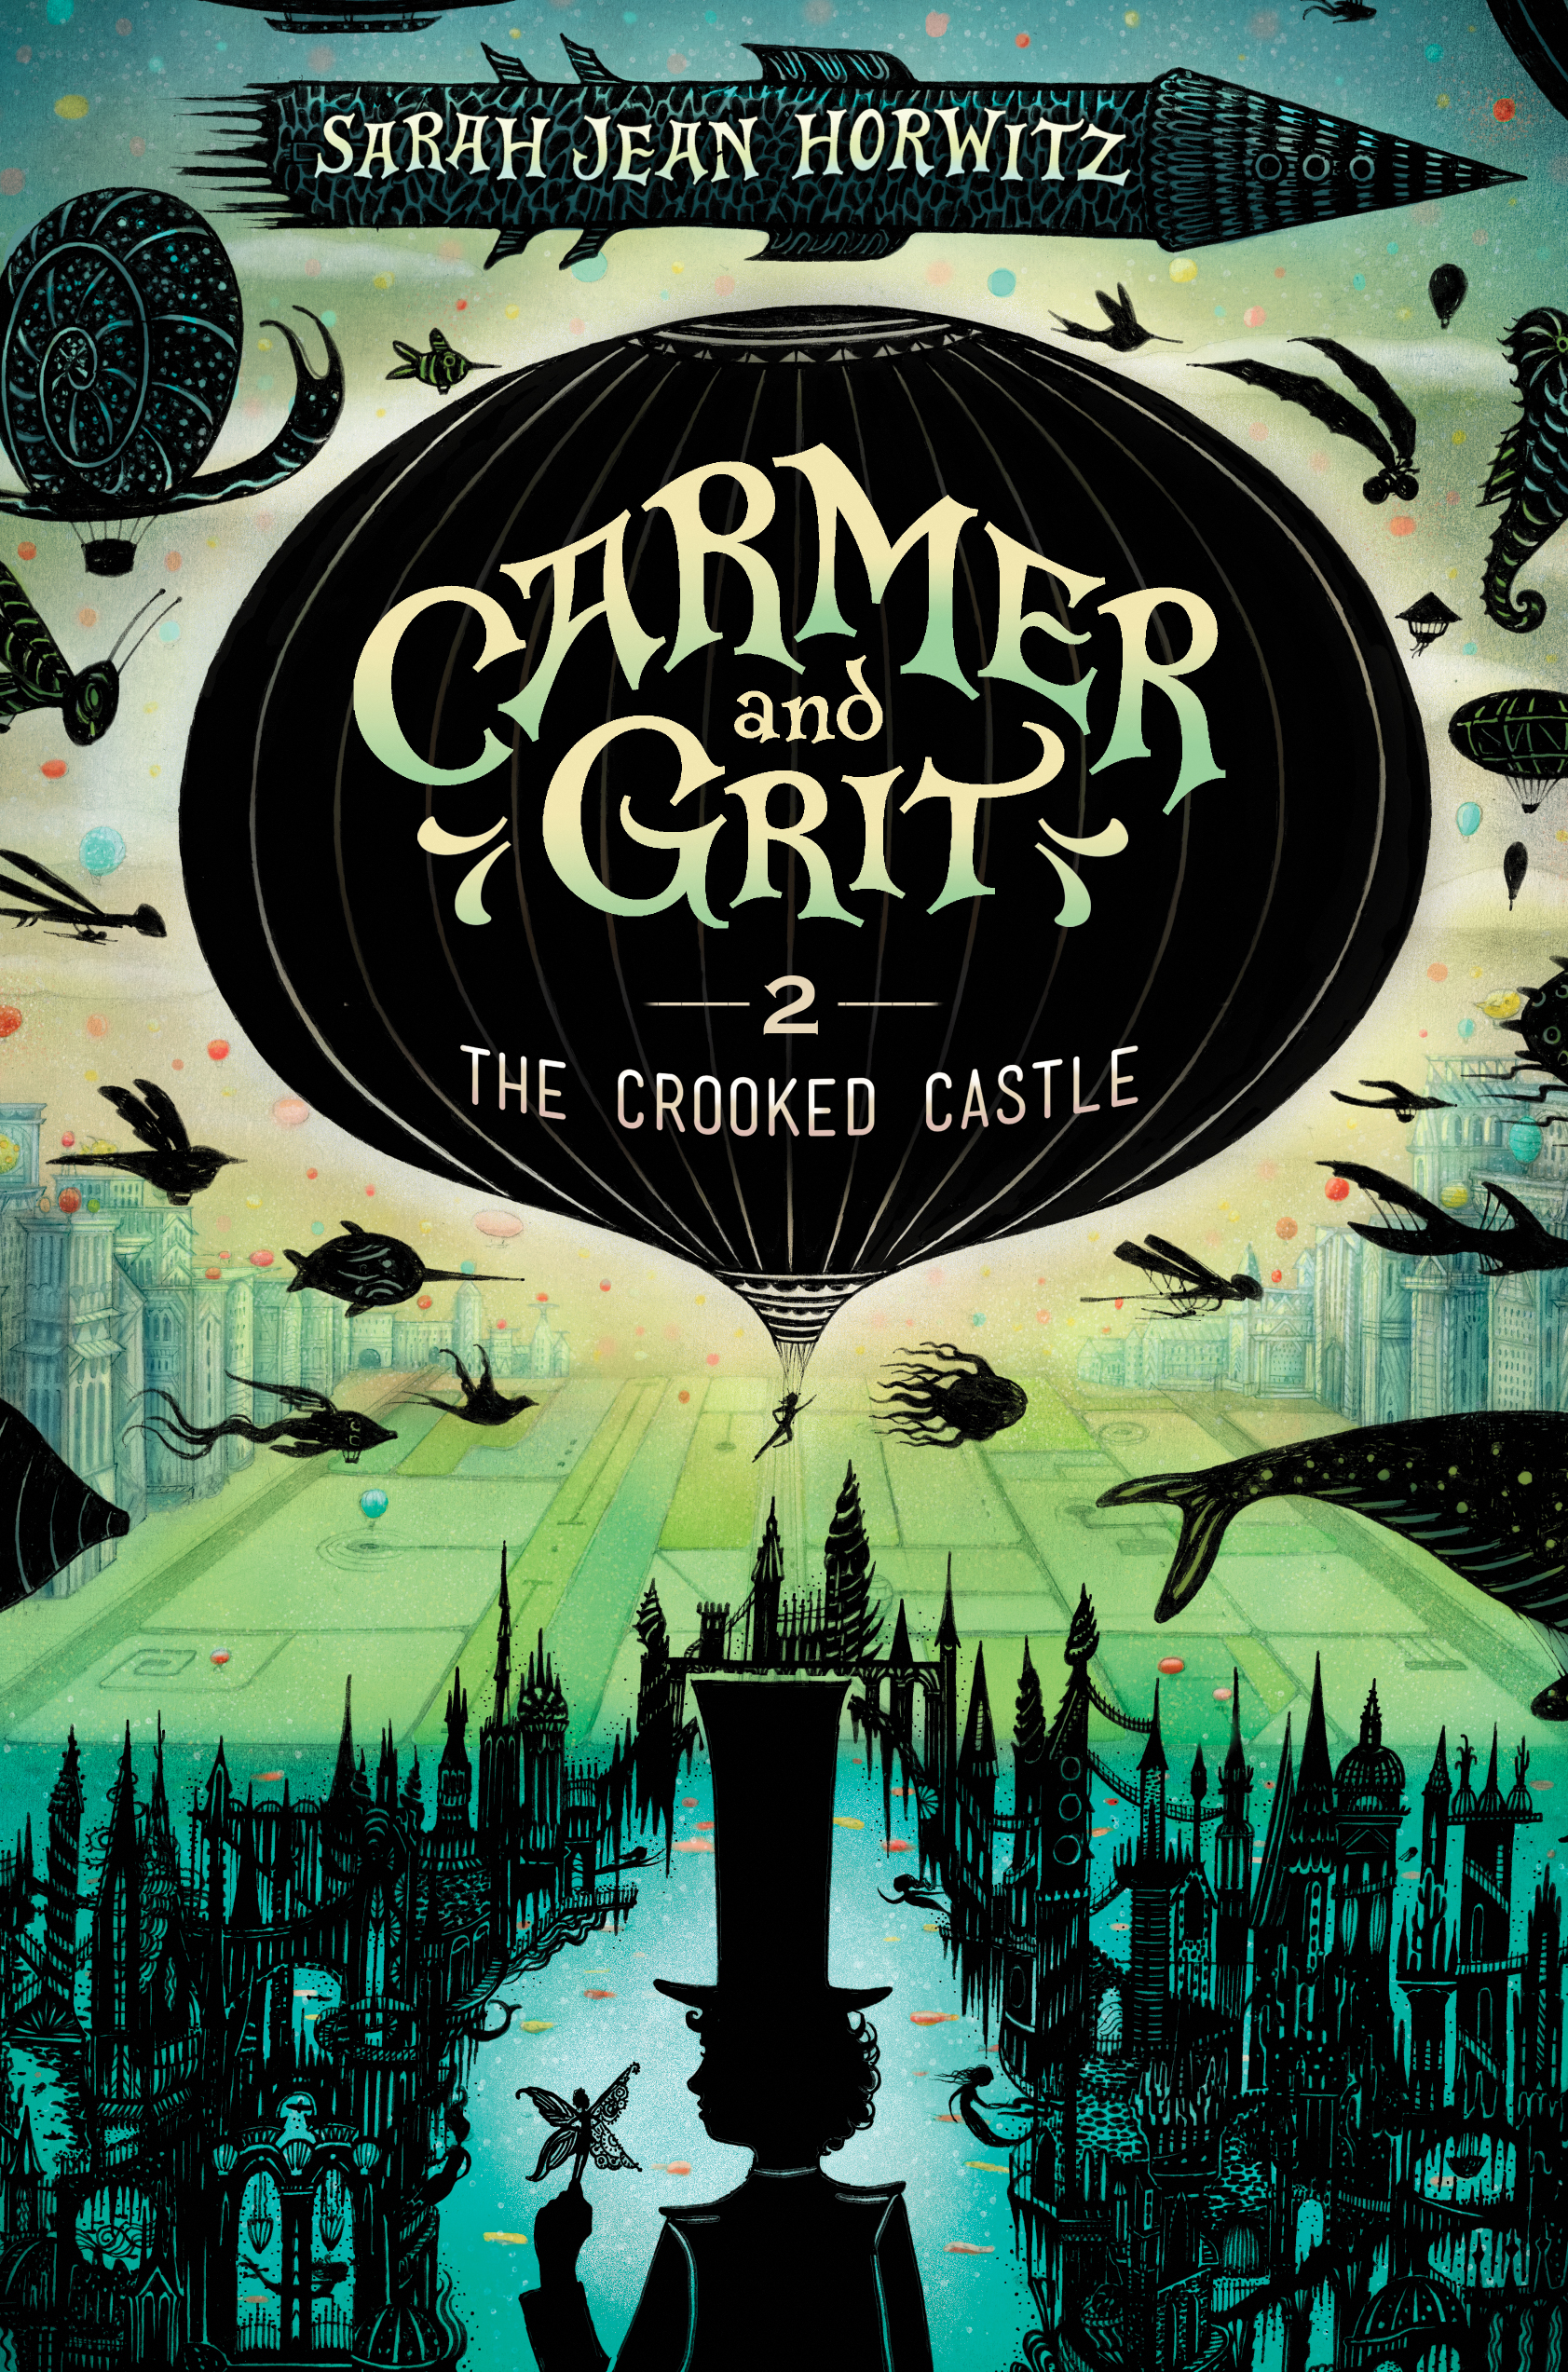 Carmer and Grit: The Crooked Castle